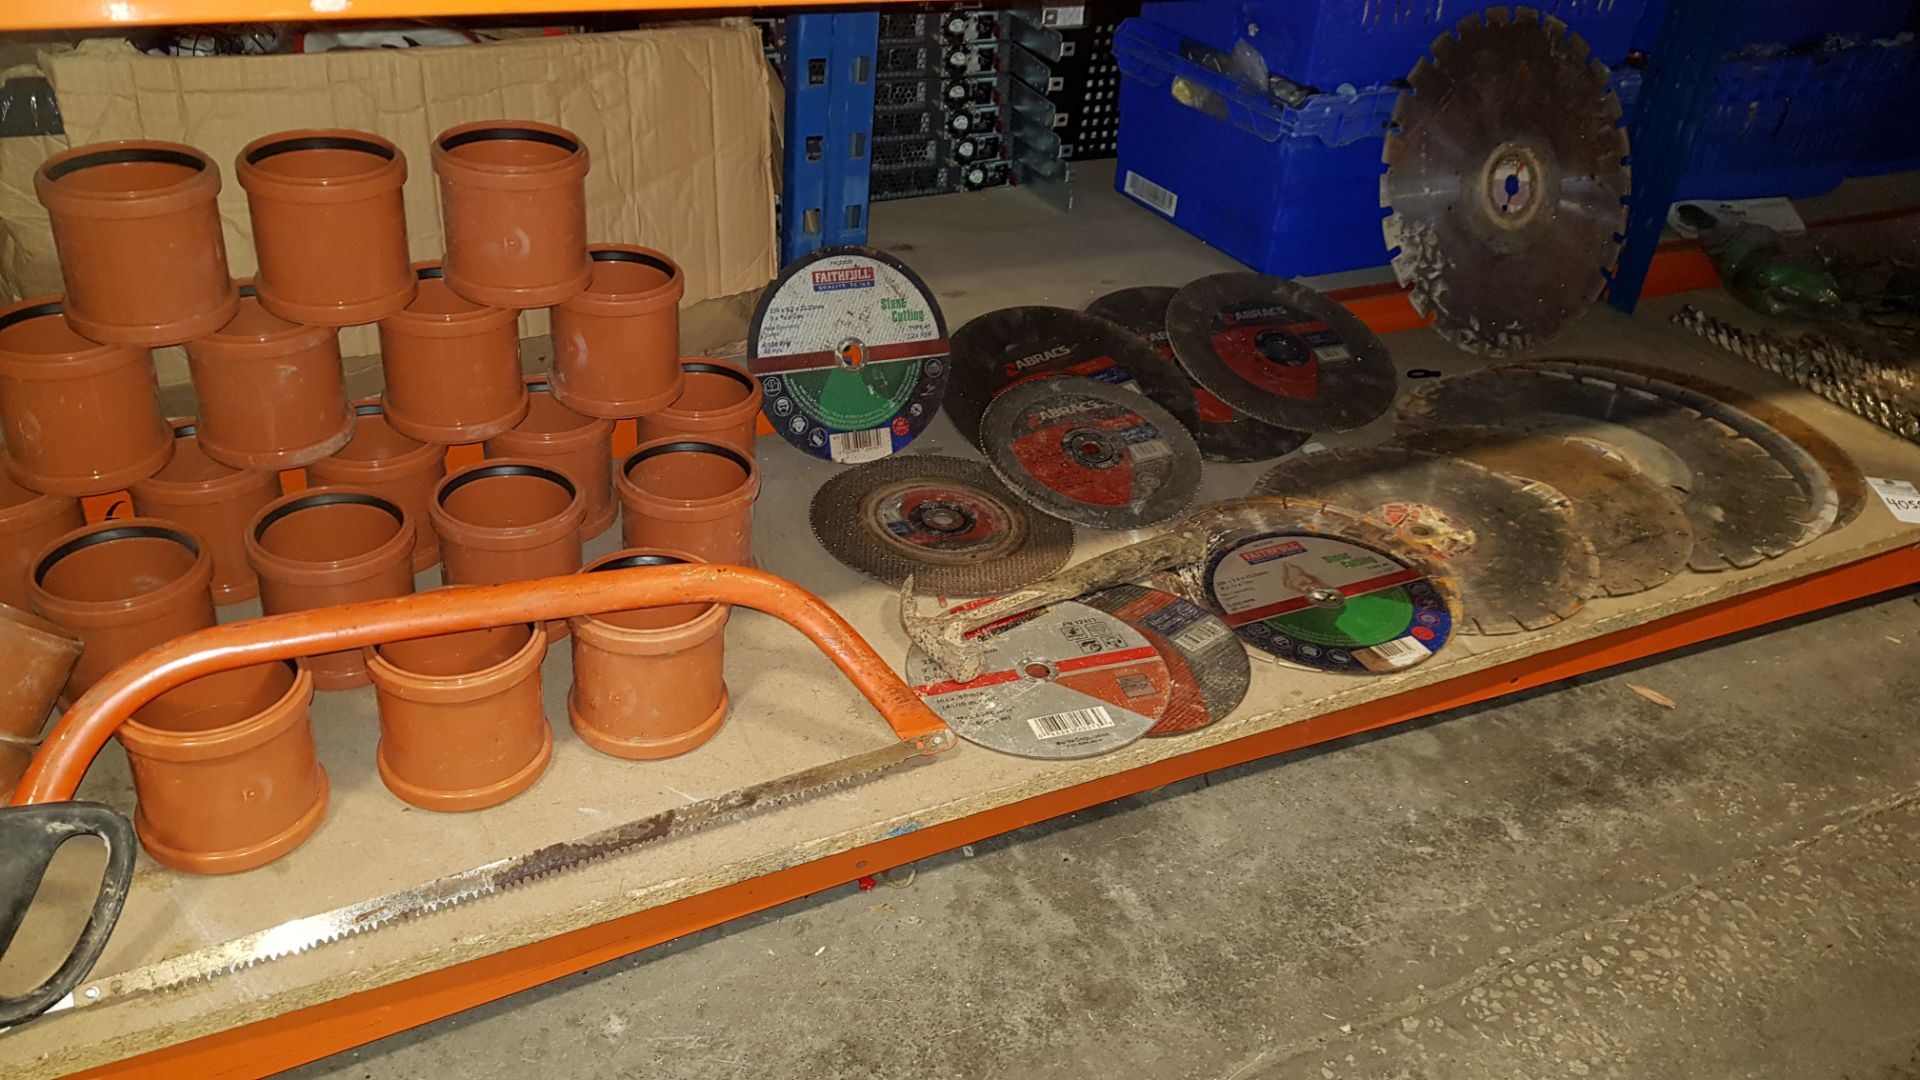 LOT TO CONTAIN VARIOUS CUTTING DISKS, DRAINAGE COMPONENTS,HAMMER AND BAND SAW